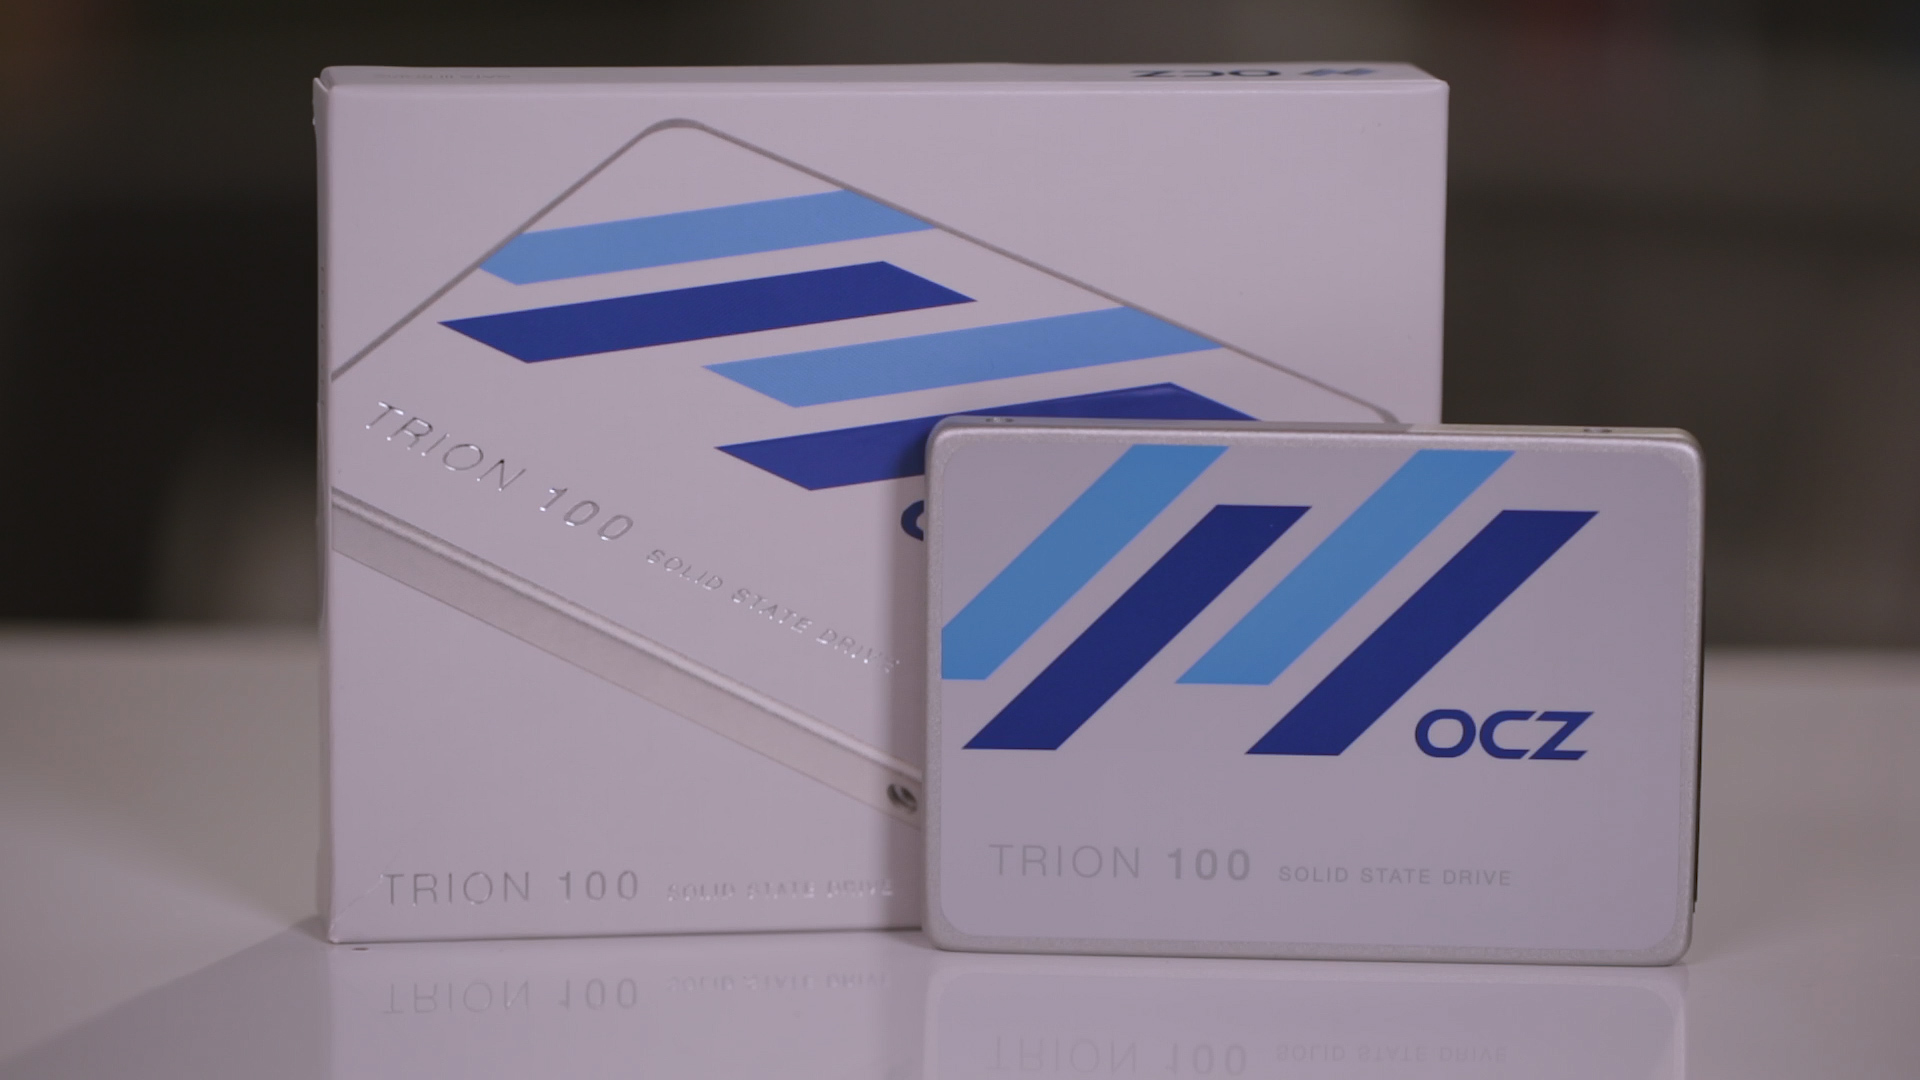 Video: The OCZ Trion SSD is pretty slow but very affordable